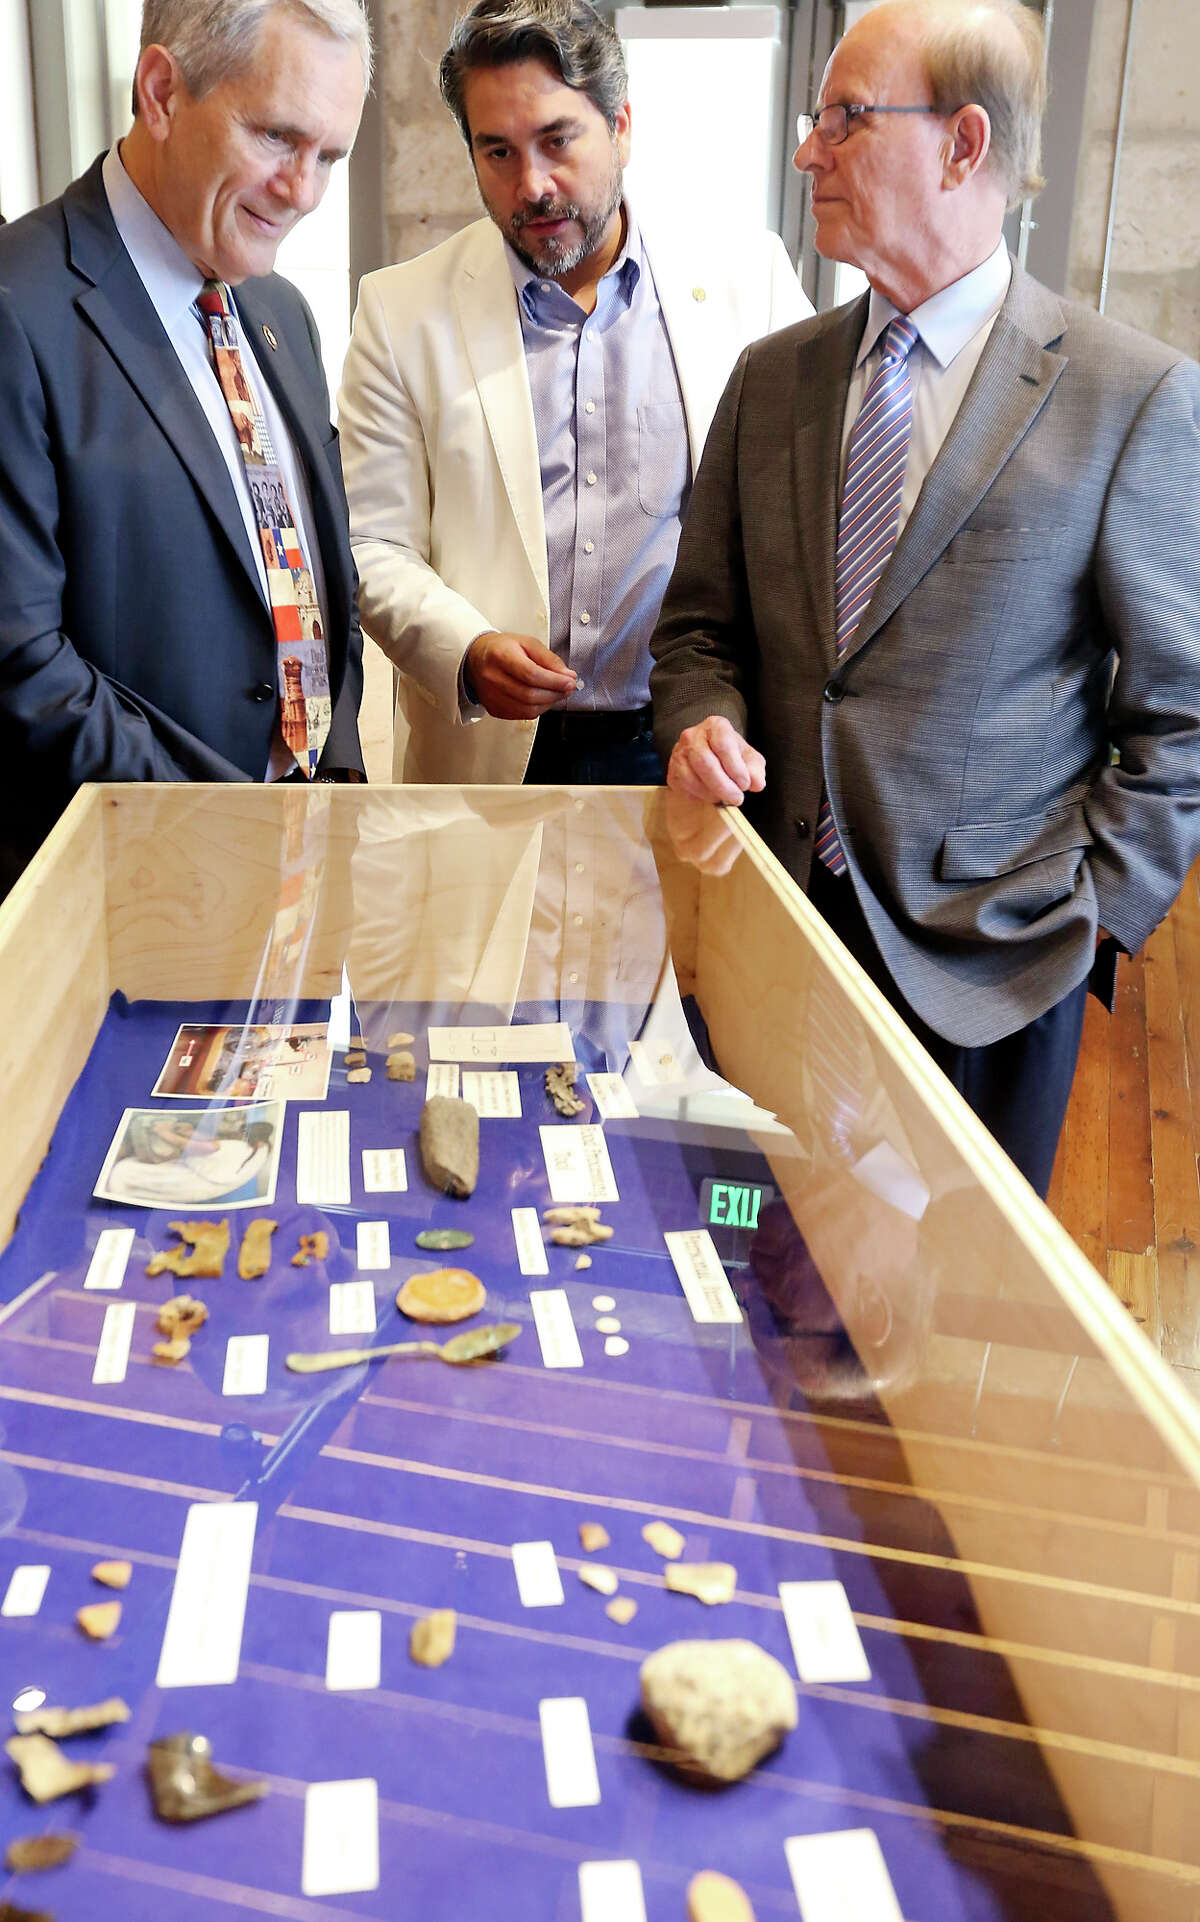 U.S. Rep. Lloyd Doggett (from left), District 1 Councilman Robert Trevino, and Bexar County Judge Nelson Wolff look at artifacts from the probable first site of the Mission San Antonio de Valero (1718) after a press conference held Friday Oct. 2, 2015 in the Culture Commons Storefront Gallery & Exhibit Hall at the Plaza de Armas Building.